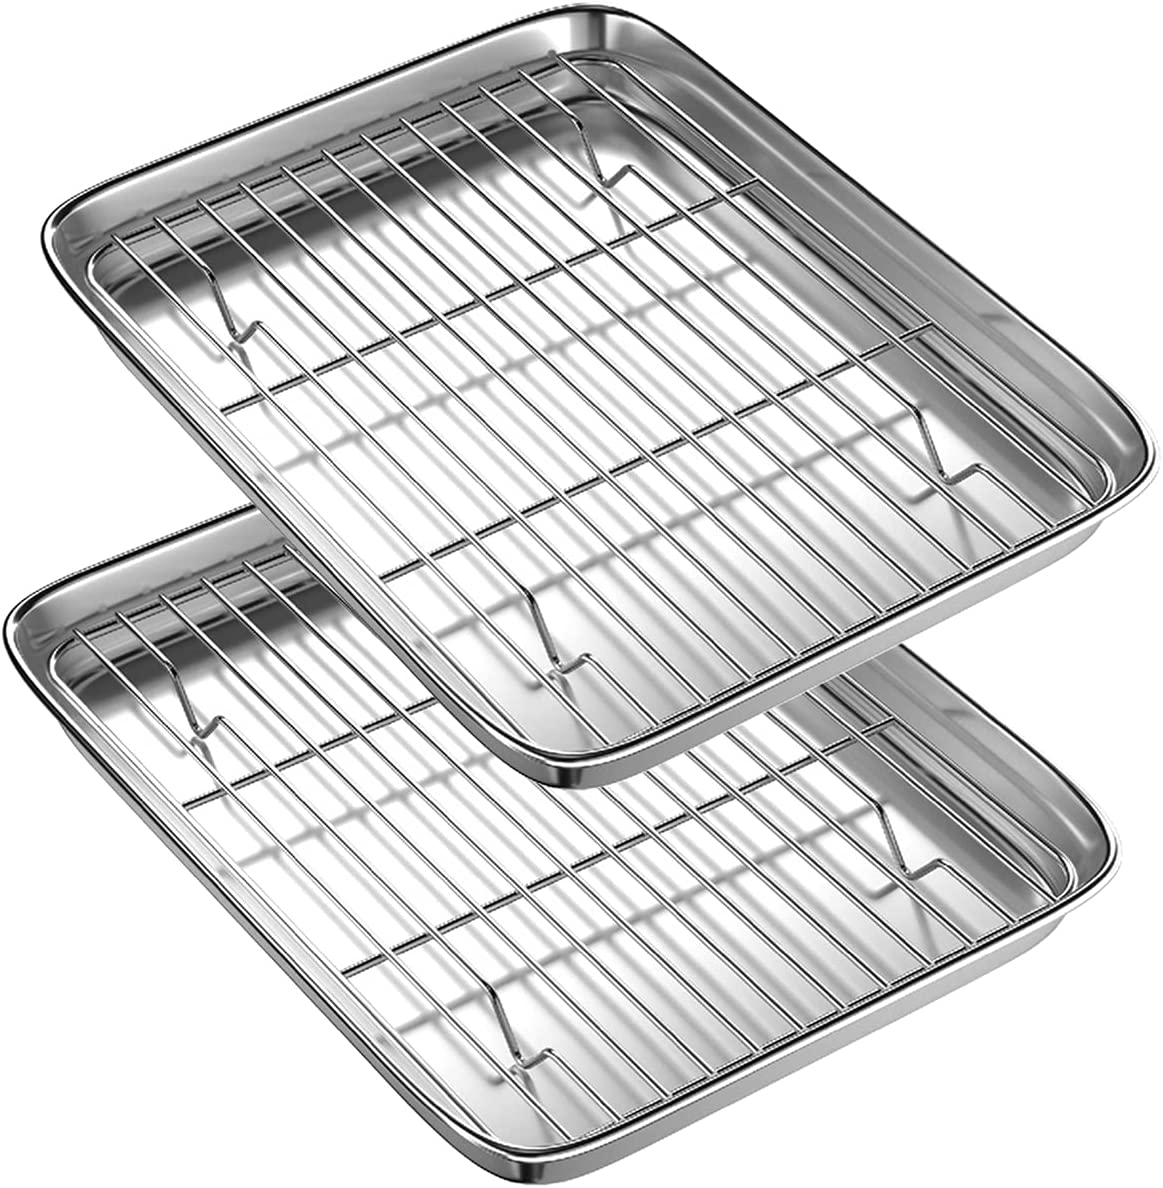 Toaster Oven Tray and Rack Set, BYkooc Small Stainless Steel Toaster Oven Pan with Rack,9 x 7 x 1 inch,Dishwasher Safe Oven Pan, Anti-rust, Sturdy & Heavy(2 Pans + 2 Racks)